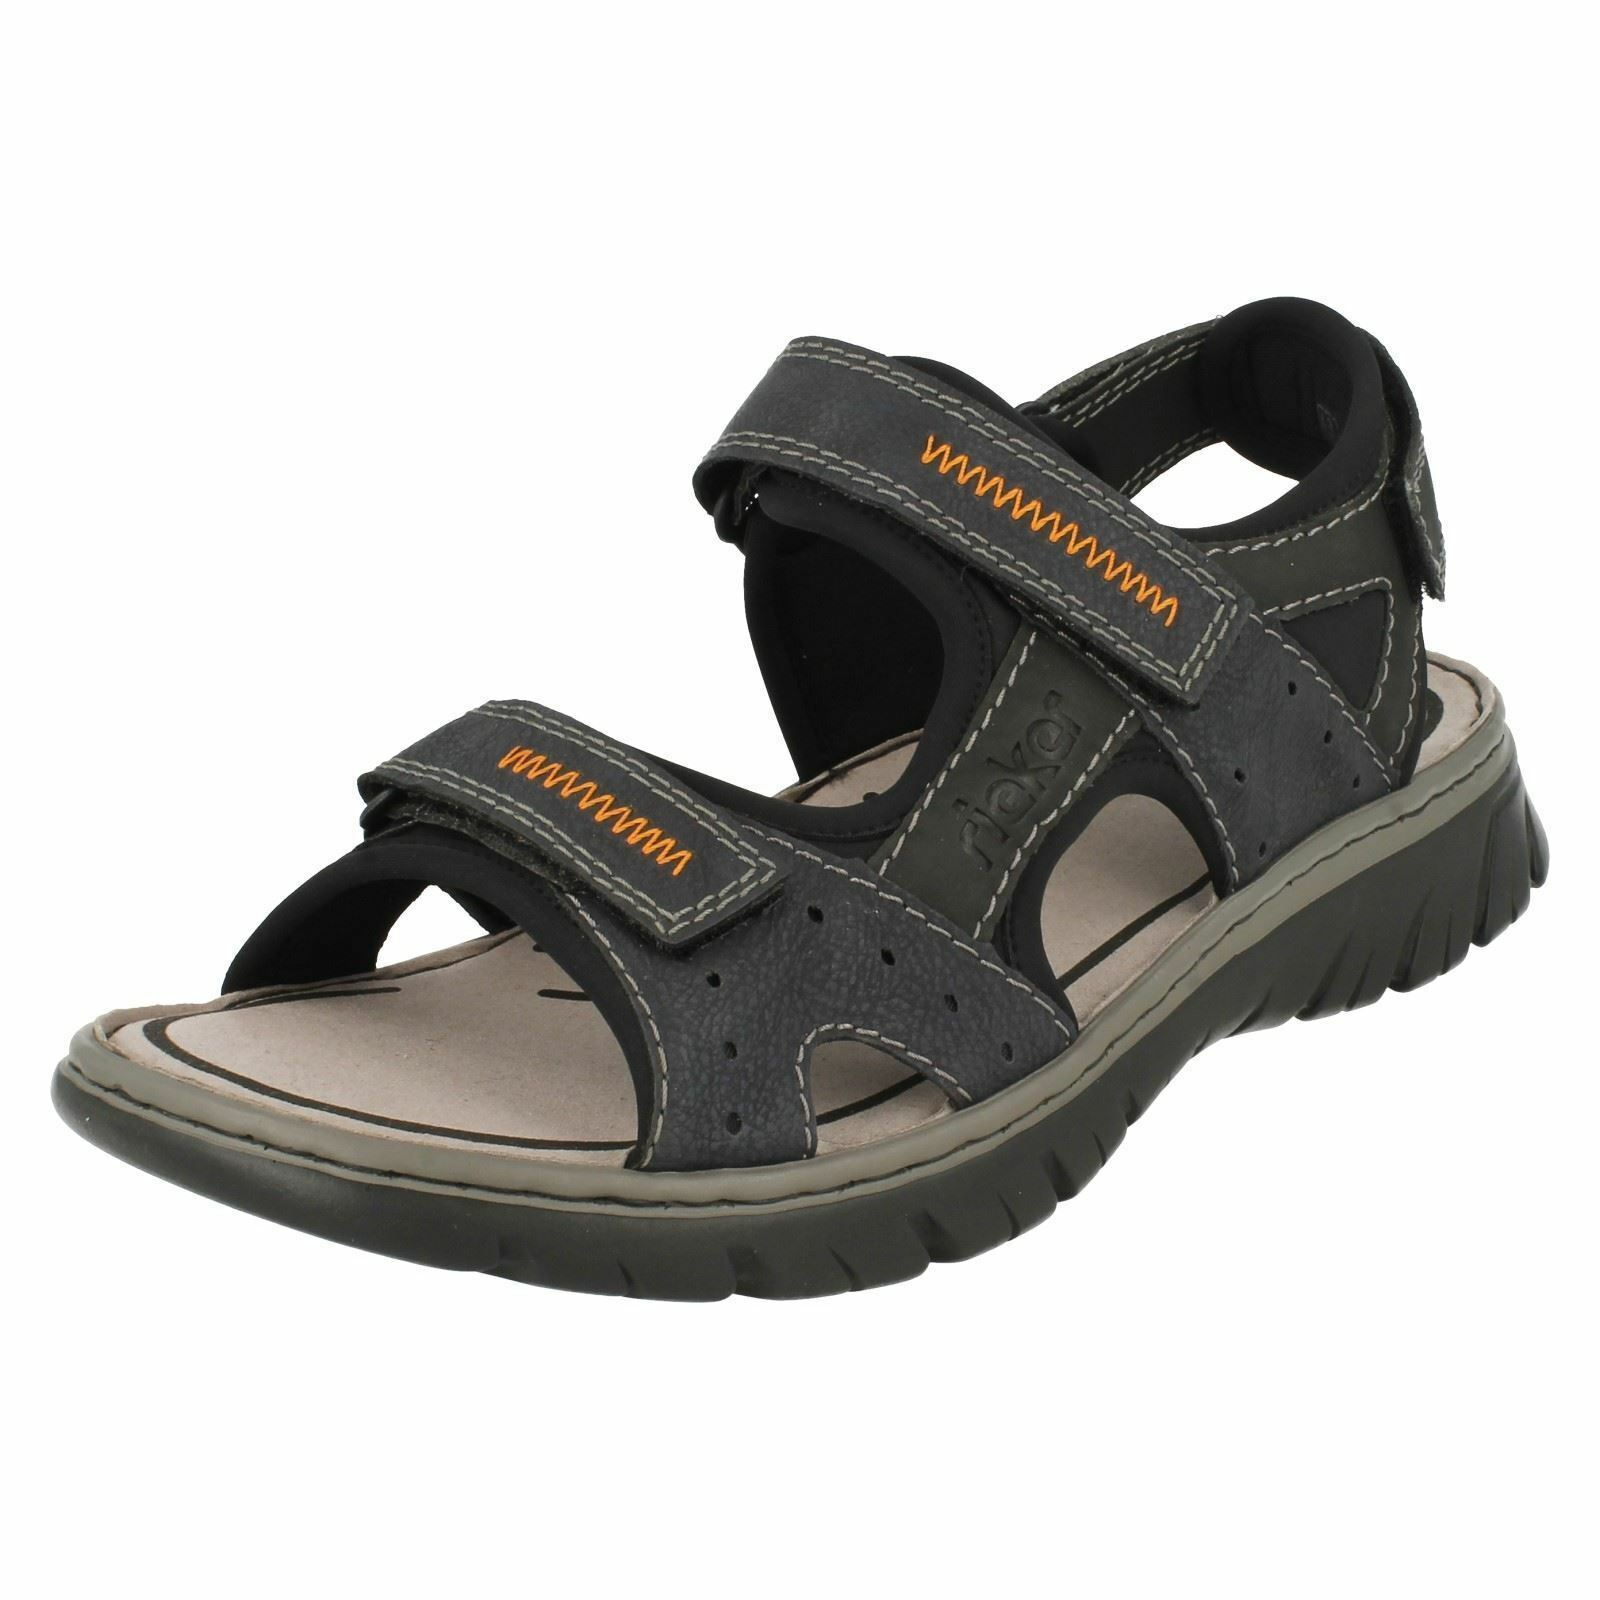 Mens Mens Mens Rieker 26757 bluee Combination Synthetic Strap Sandals b47453